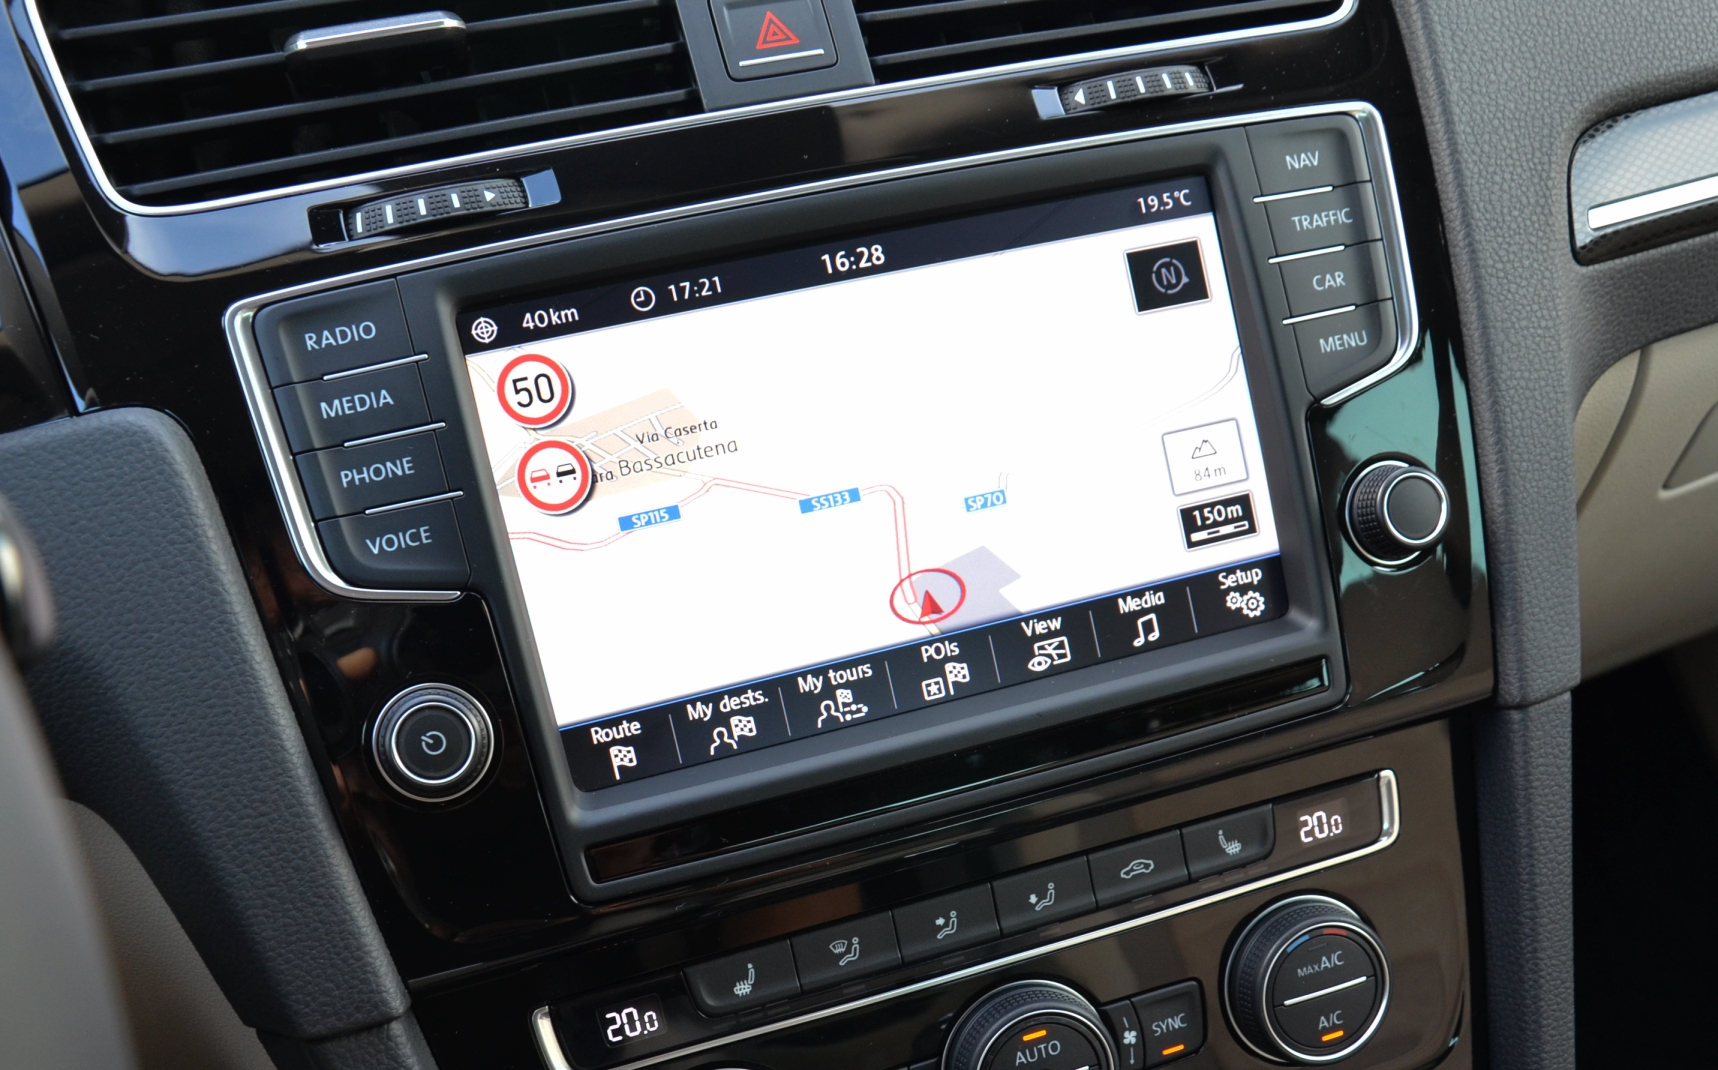 VIDEO: Volkswagen Golf MK7's touchscreen infotainment system